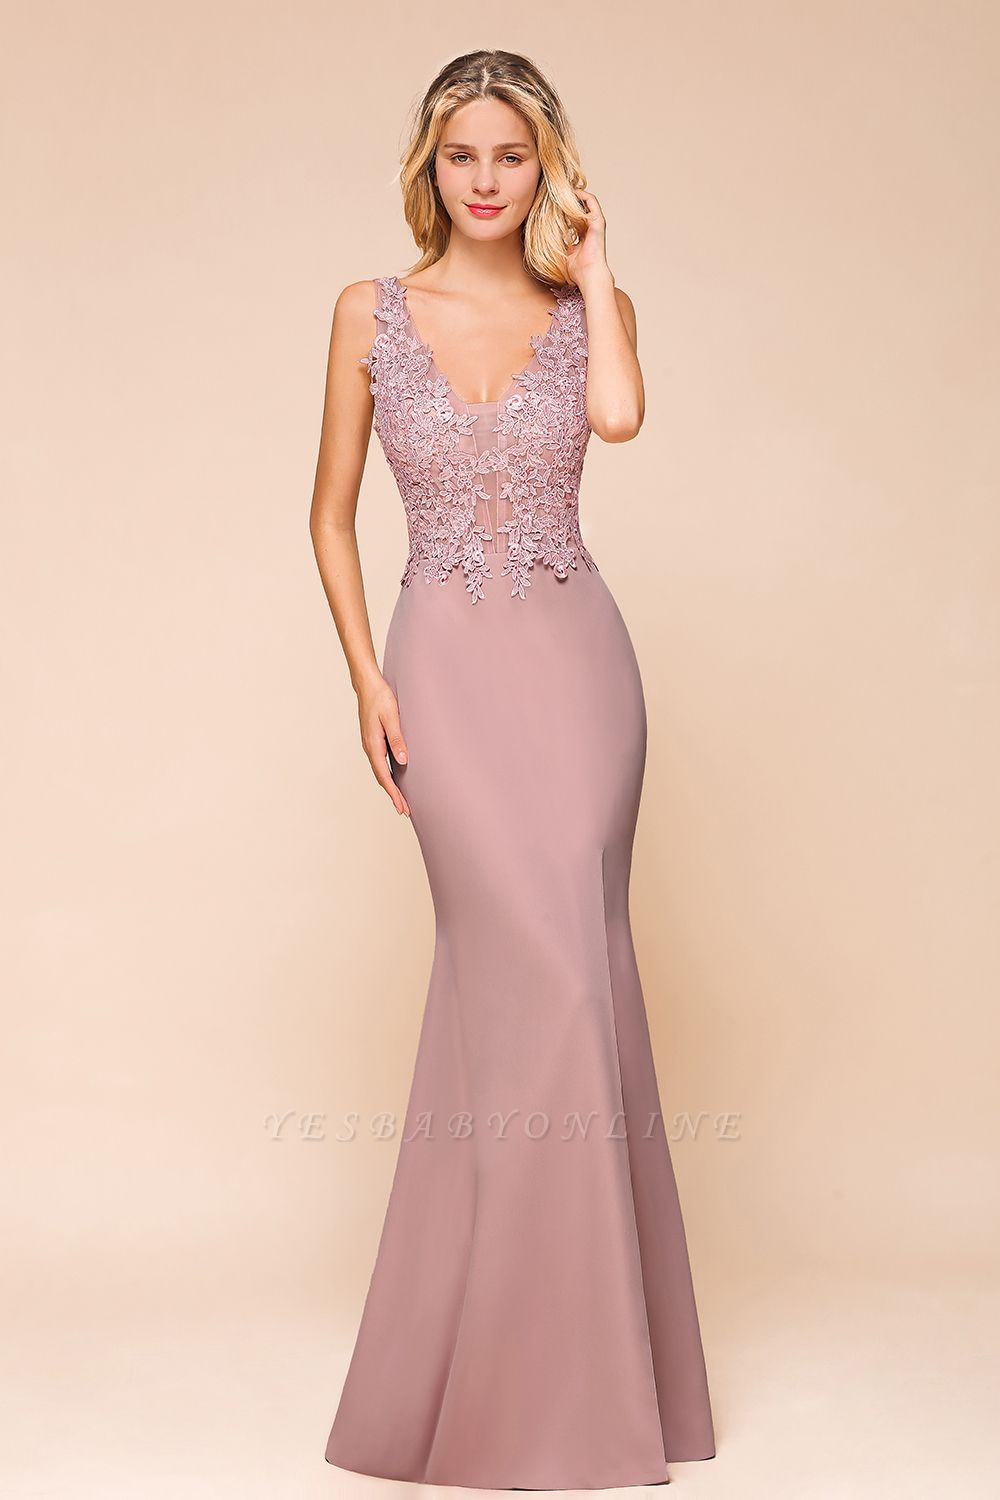 Dusty Pink Mermaid Lace Prom Dress Long Sleeveless Evening Gowns